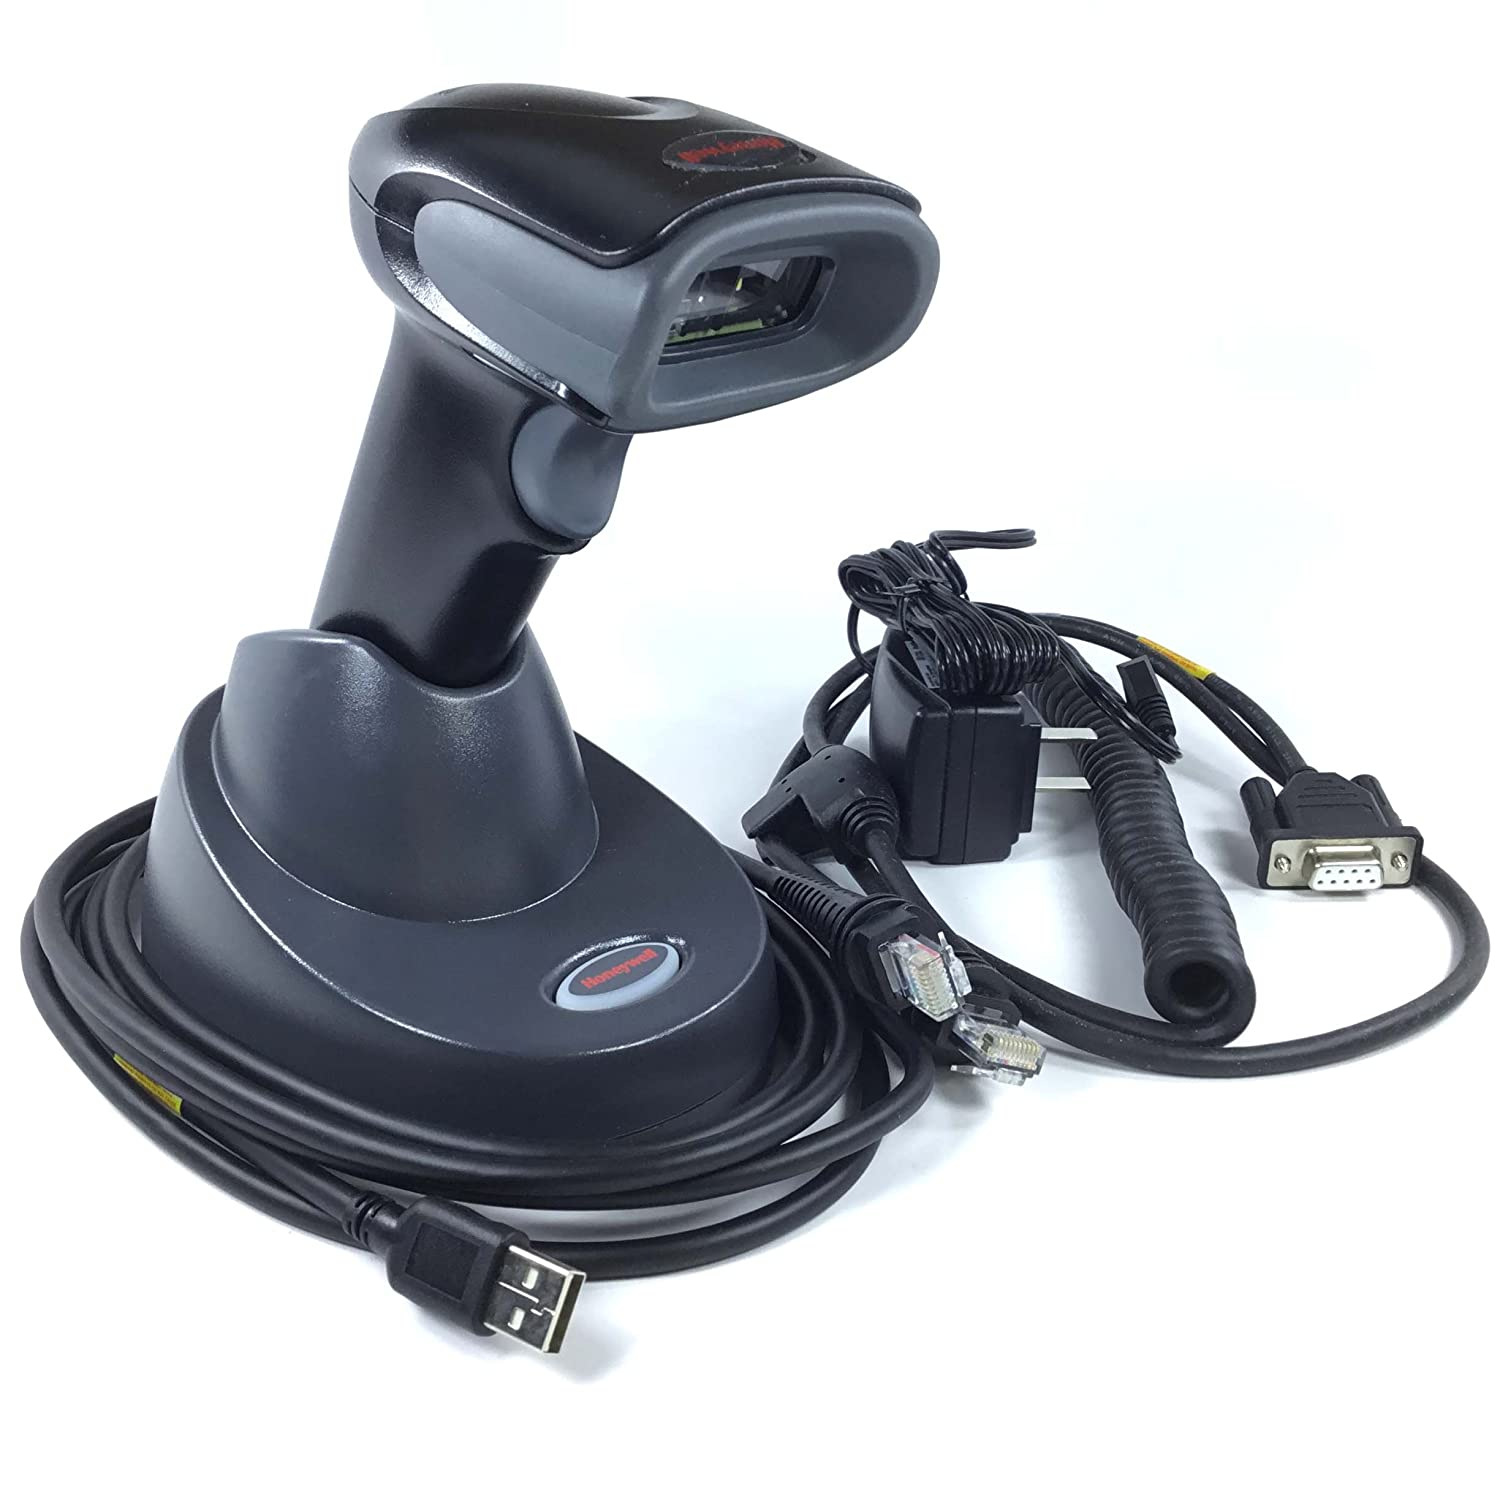 Honeywell Voyager 1450g 2D Omnidirectional Area-Imaging Scanner (1D, PDF417, and 2D), Includes Stand and USB Cable 1450G-2D-STAND